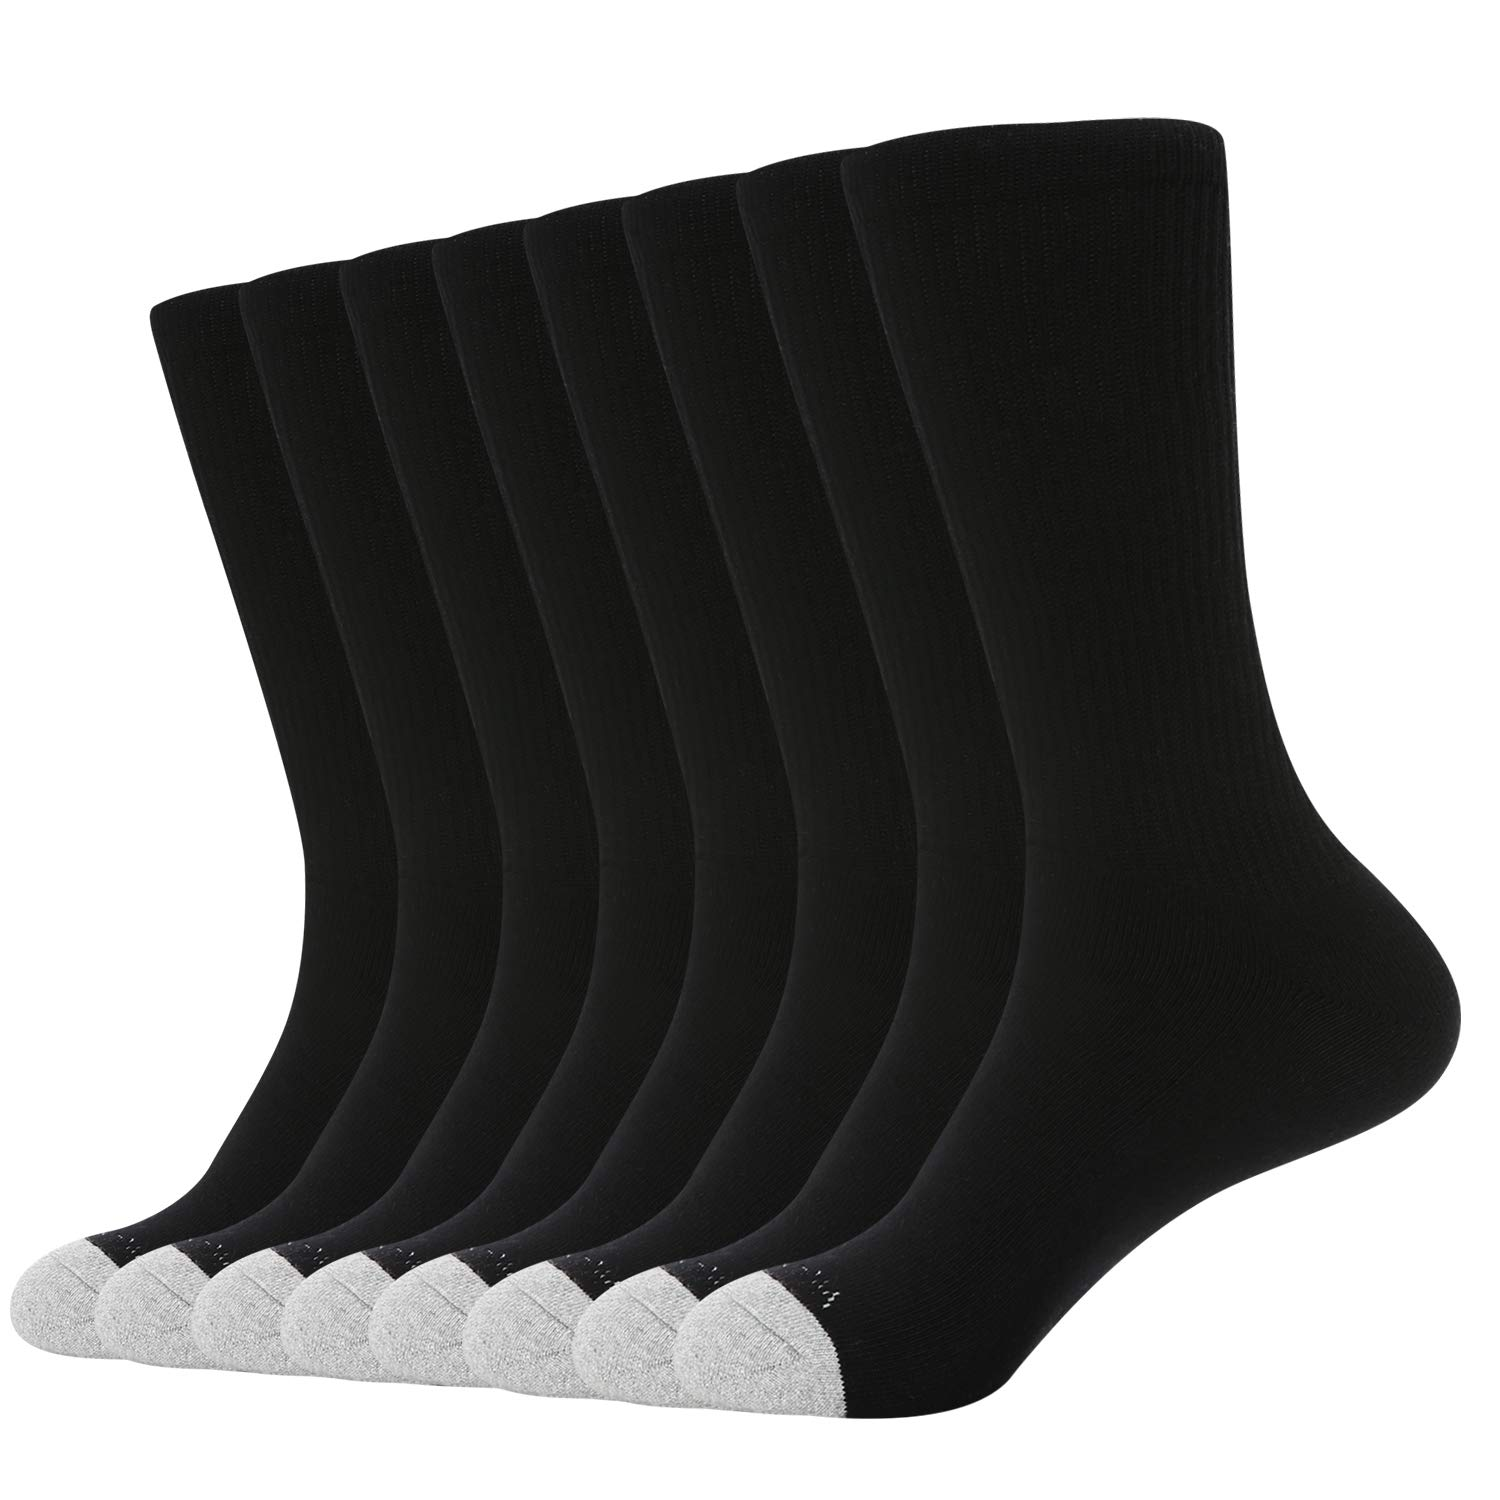 WANDER Mens Crew Cushion Socks Breathable Athletic Sports Socks Moisture Wicking Cotton Thick Socks (Socks Size:13-15, 8 Black) by WANDER